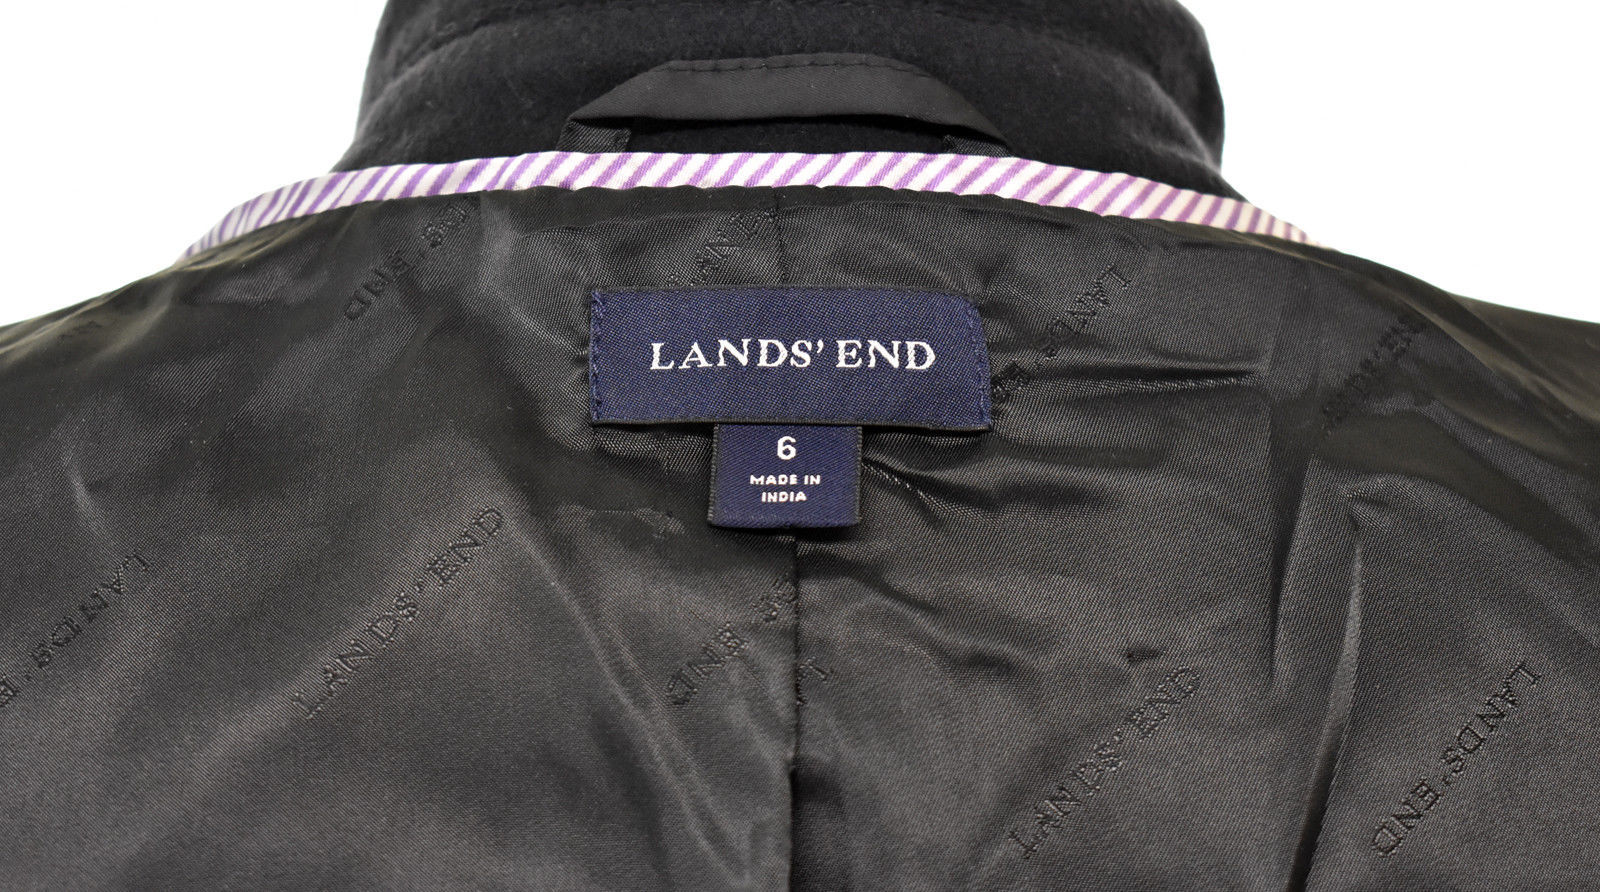 Lands' End Black Wool Blend Fully Lined Double Breasted Peacoat - Women's Size 6